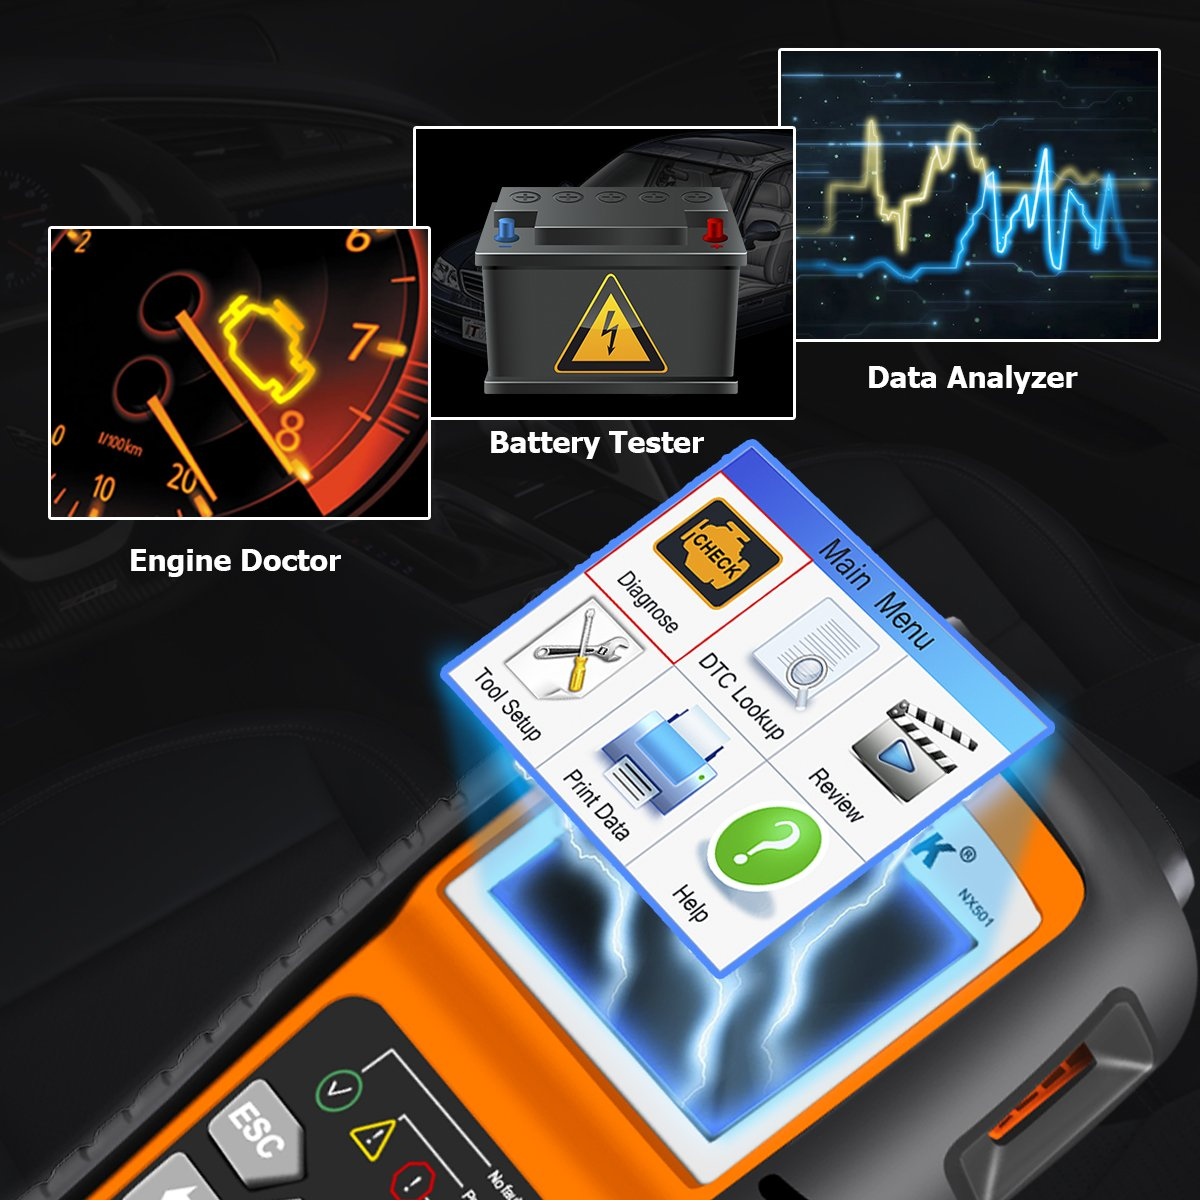 Nexpeak Obd2 Scanner Nx501 Enhanced Obd Ii Auto Code Product 2003 This Circuit Tester To Test The Battery Kit Reader Car Diagnostic Scan Tool Vehicle Check Engine Light Analyzer Automotive